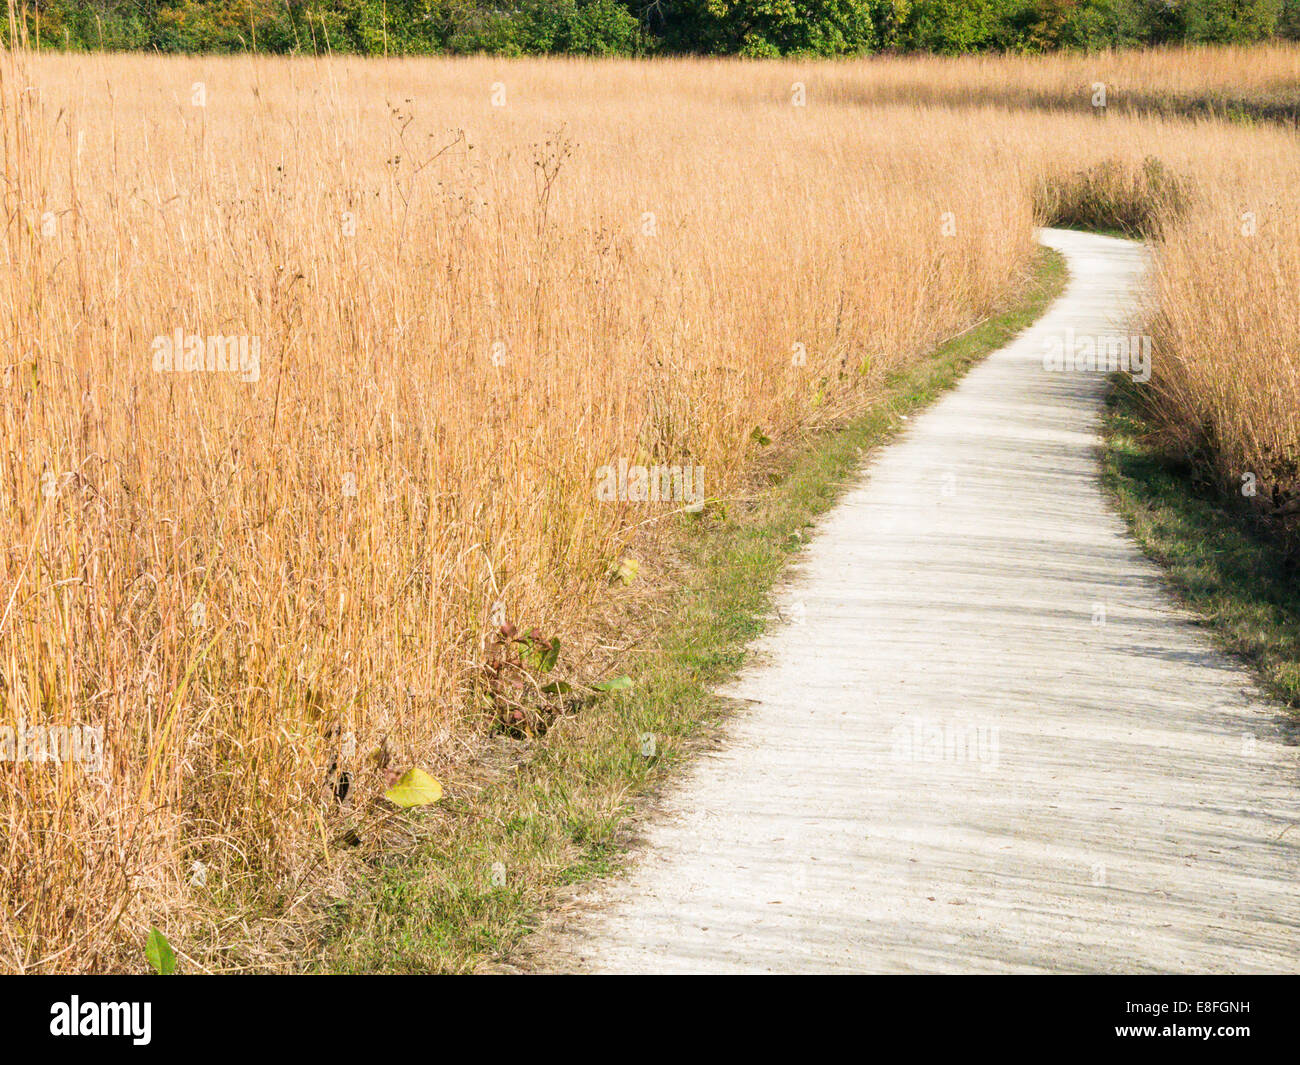 Nature trail through grass Stock Photo